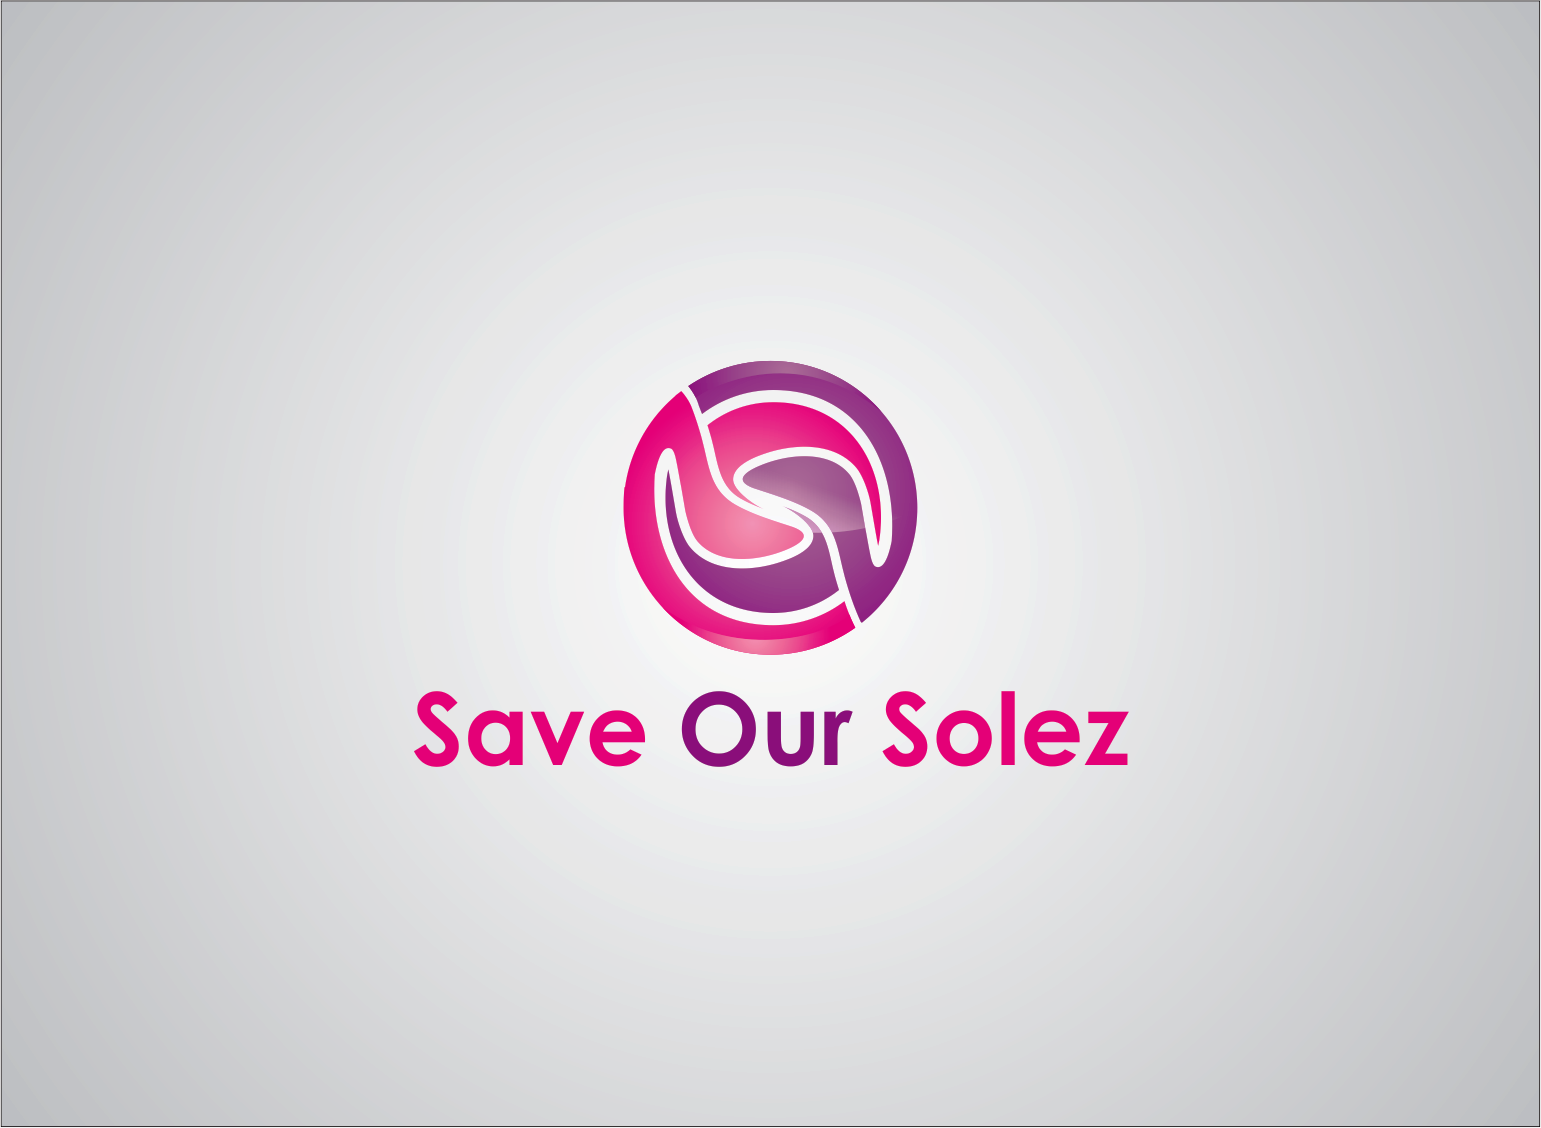 Logo Design by Armada Jamaluddin - Entry No. 99 in the Logo Design Contest Captivating Logo Design for Save Our Solez.